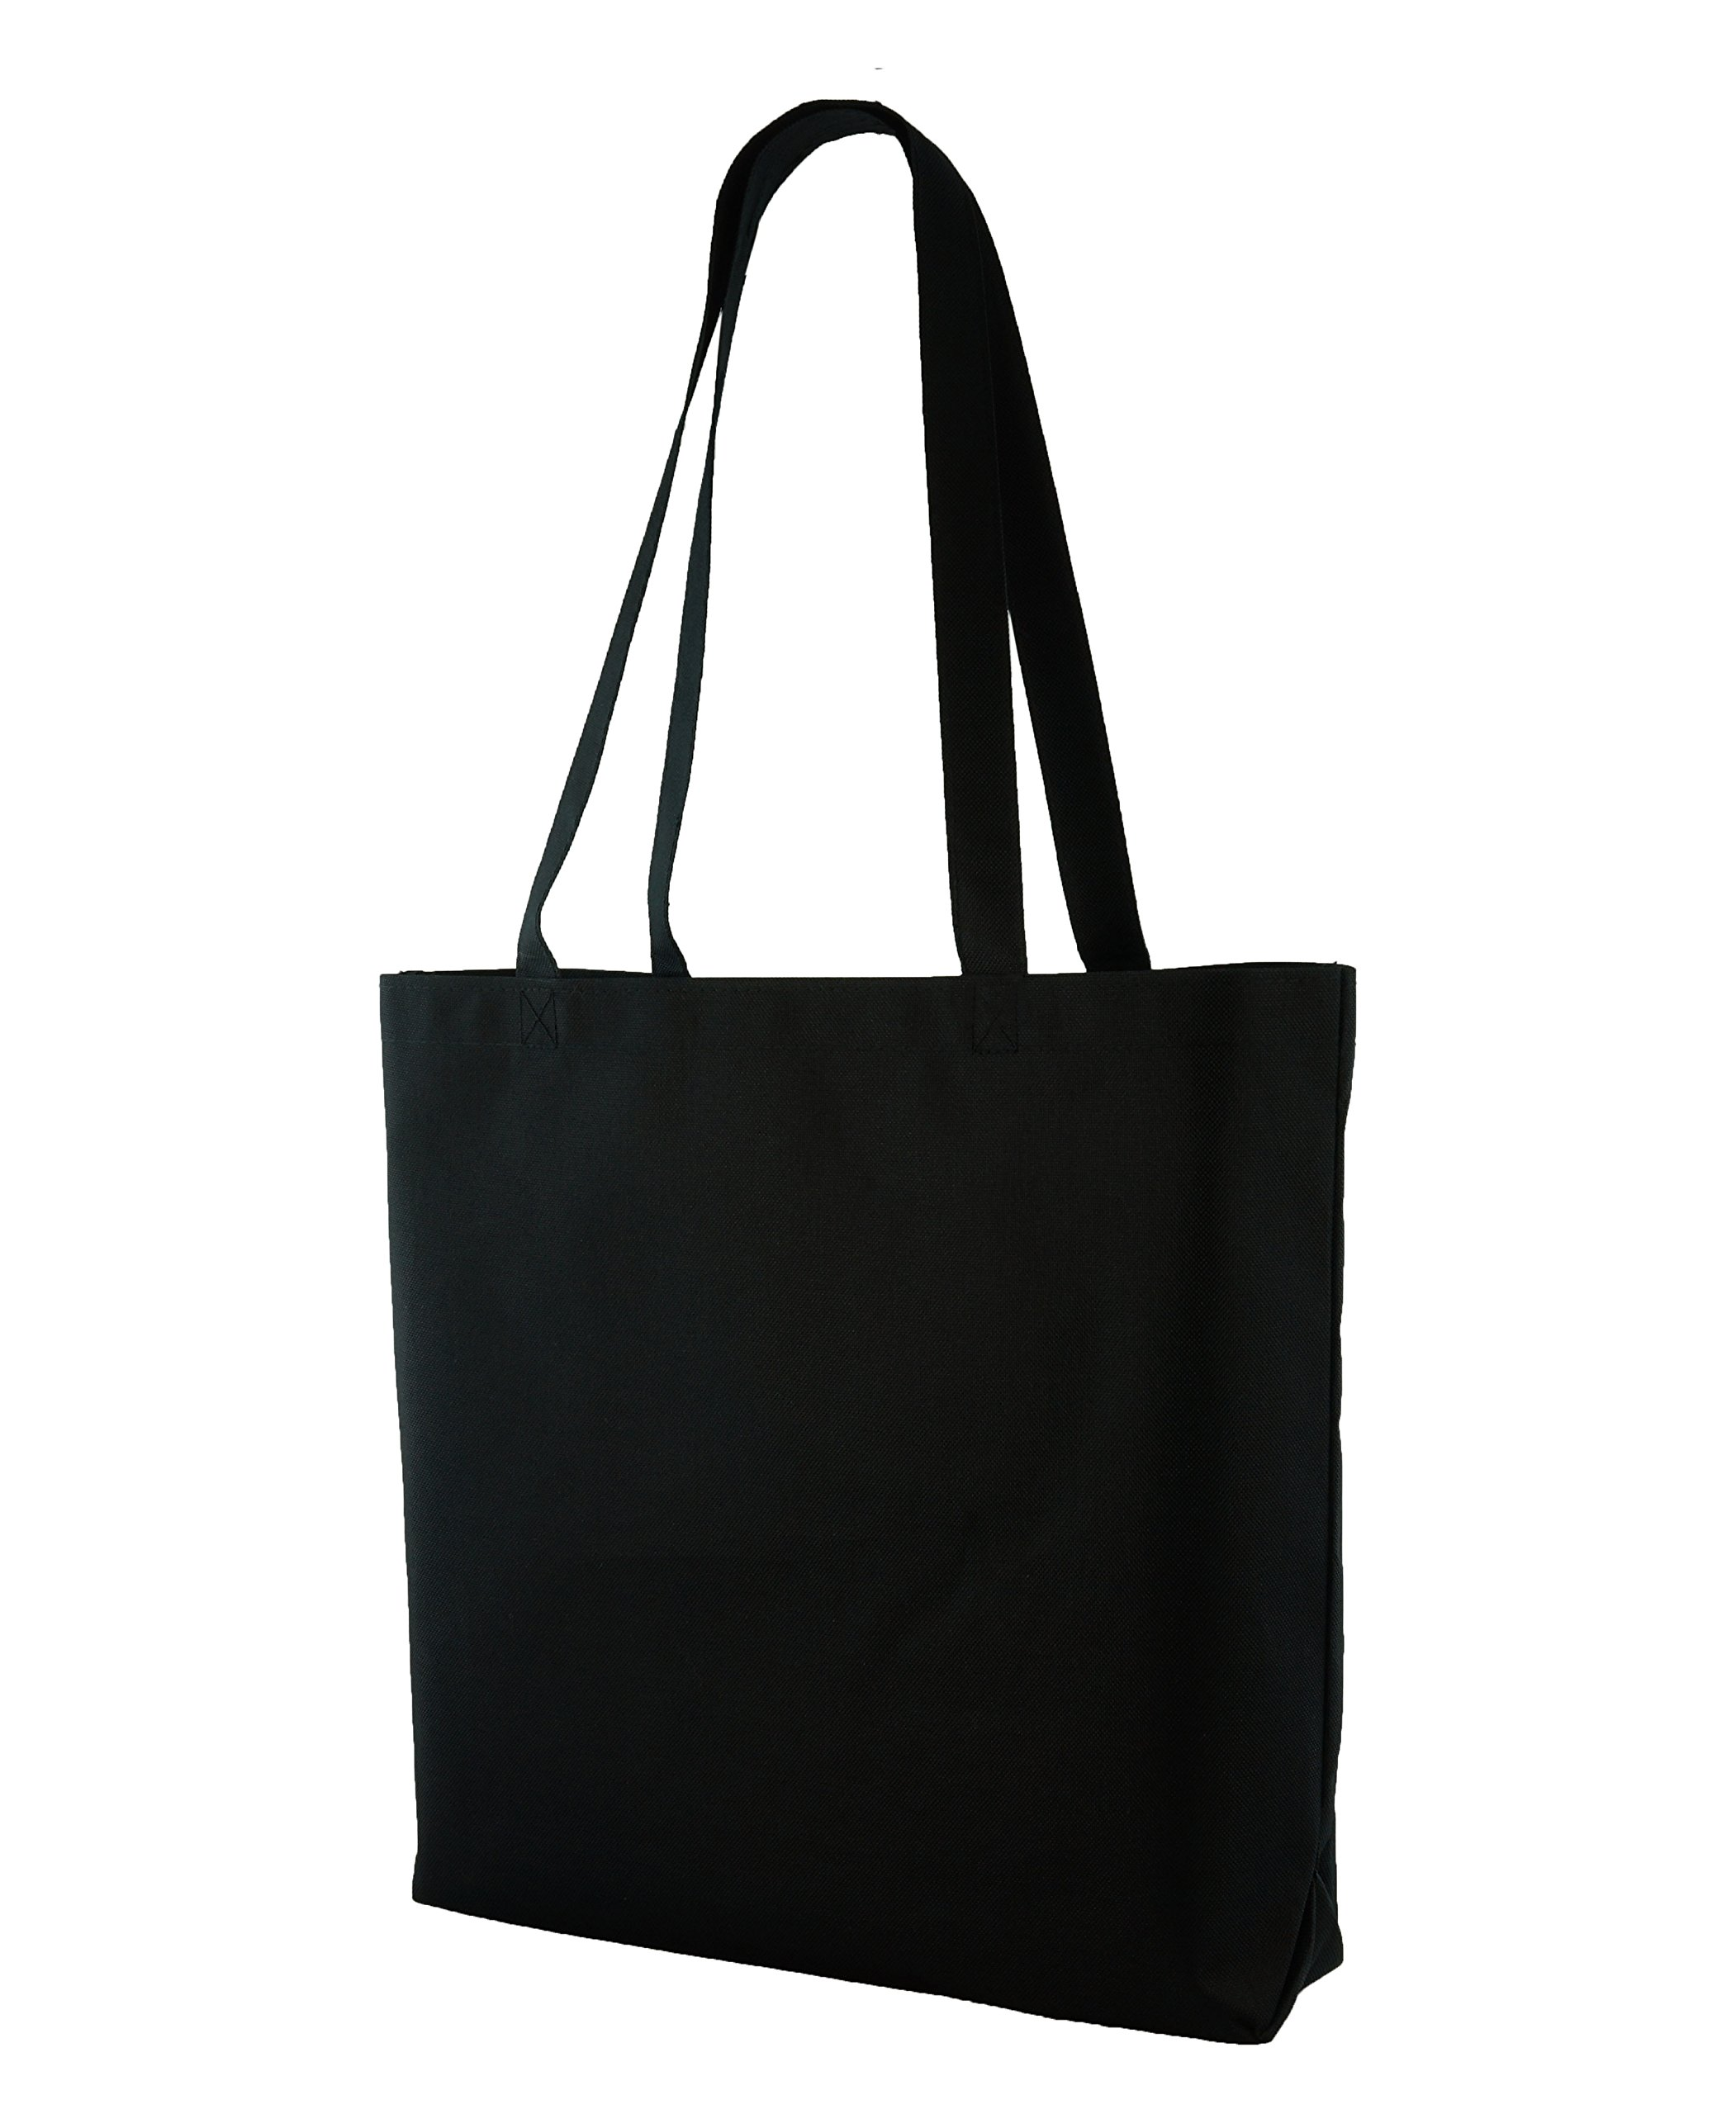 Large Shopping Tote with Shoulder Length Handles (Black)